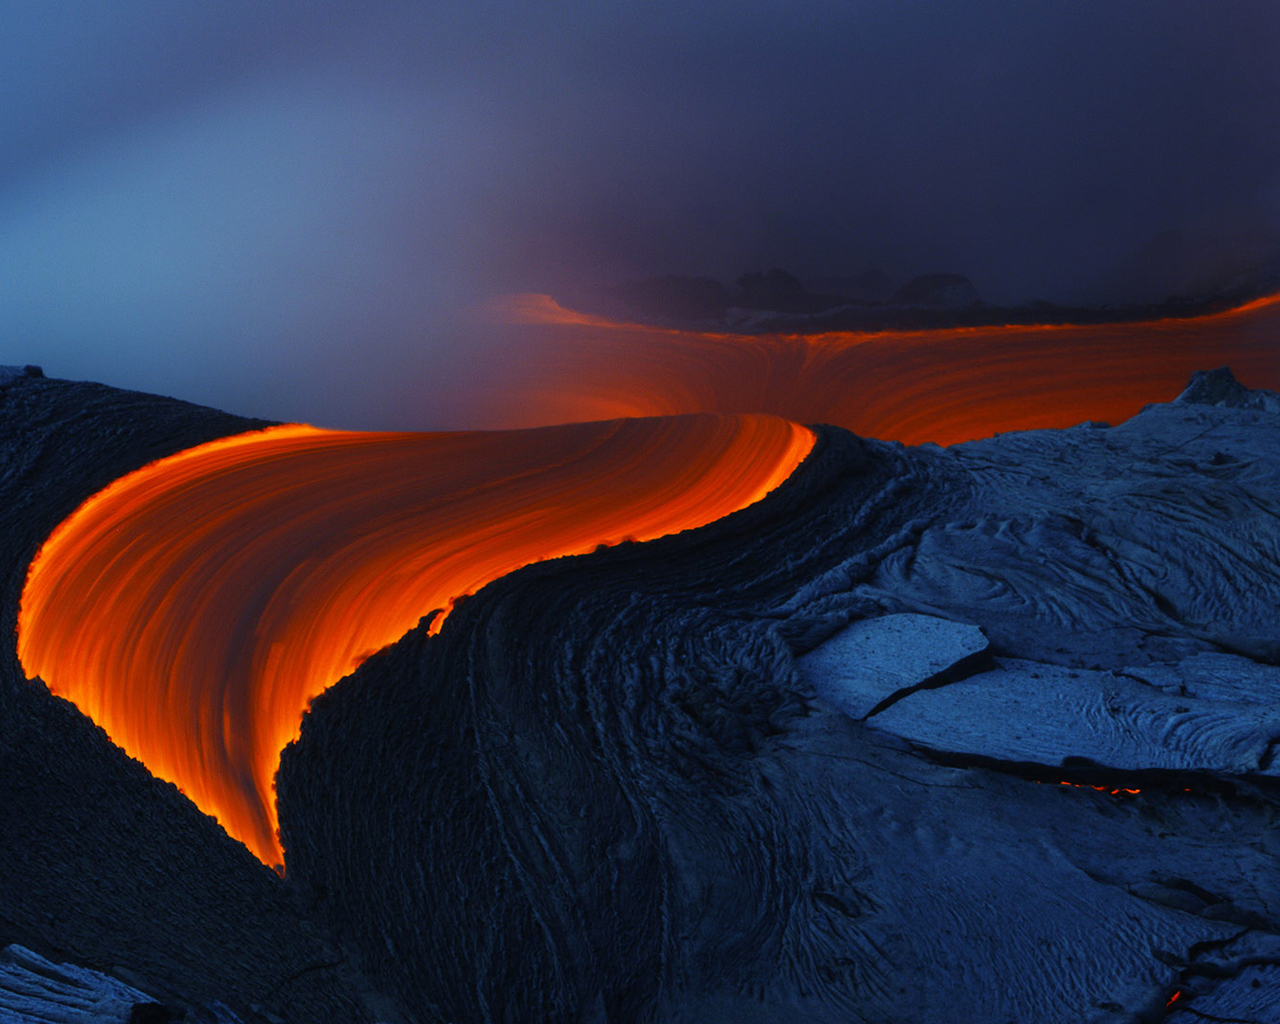 1280x1024 Volcano 1280x1024 Resolution HD 4k Wallpapers, Images, Backgrounds, Photos and Pictures